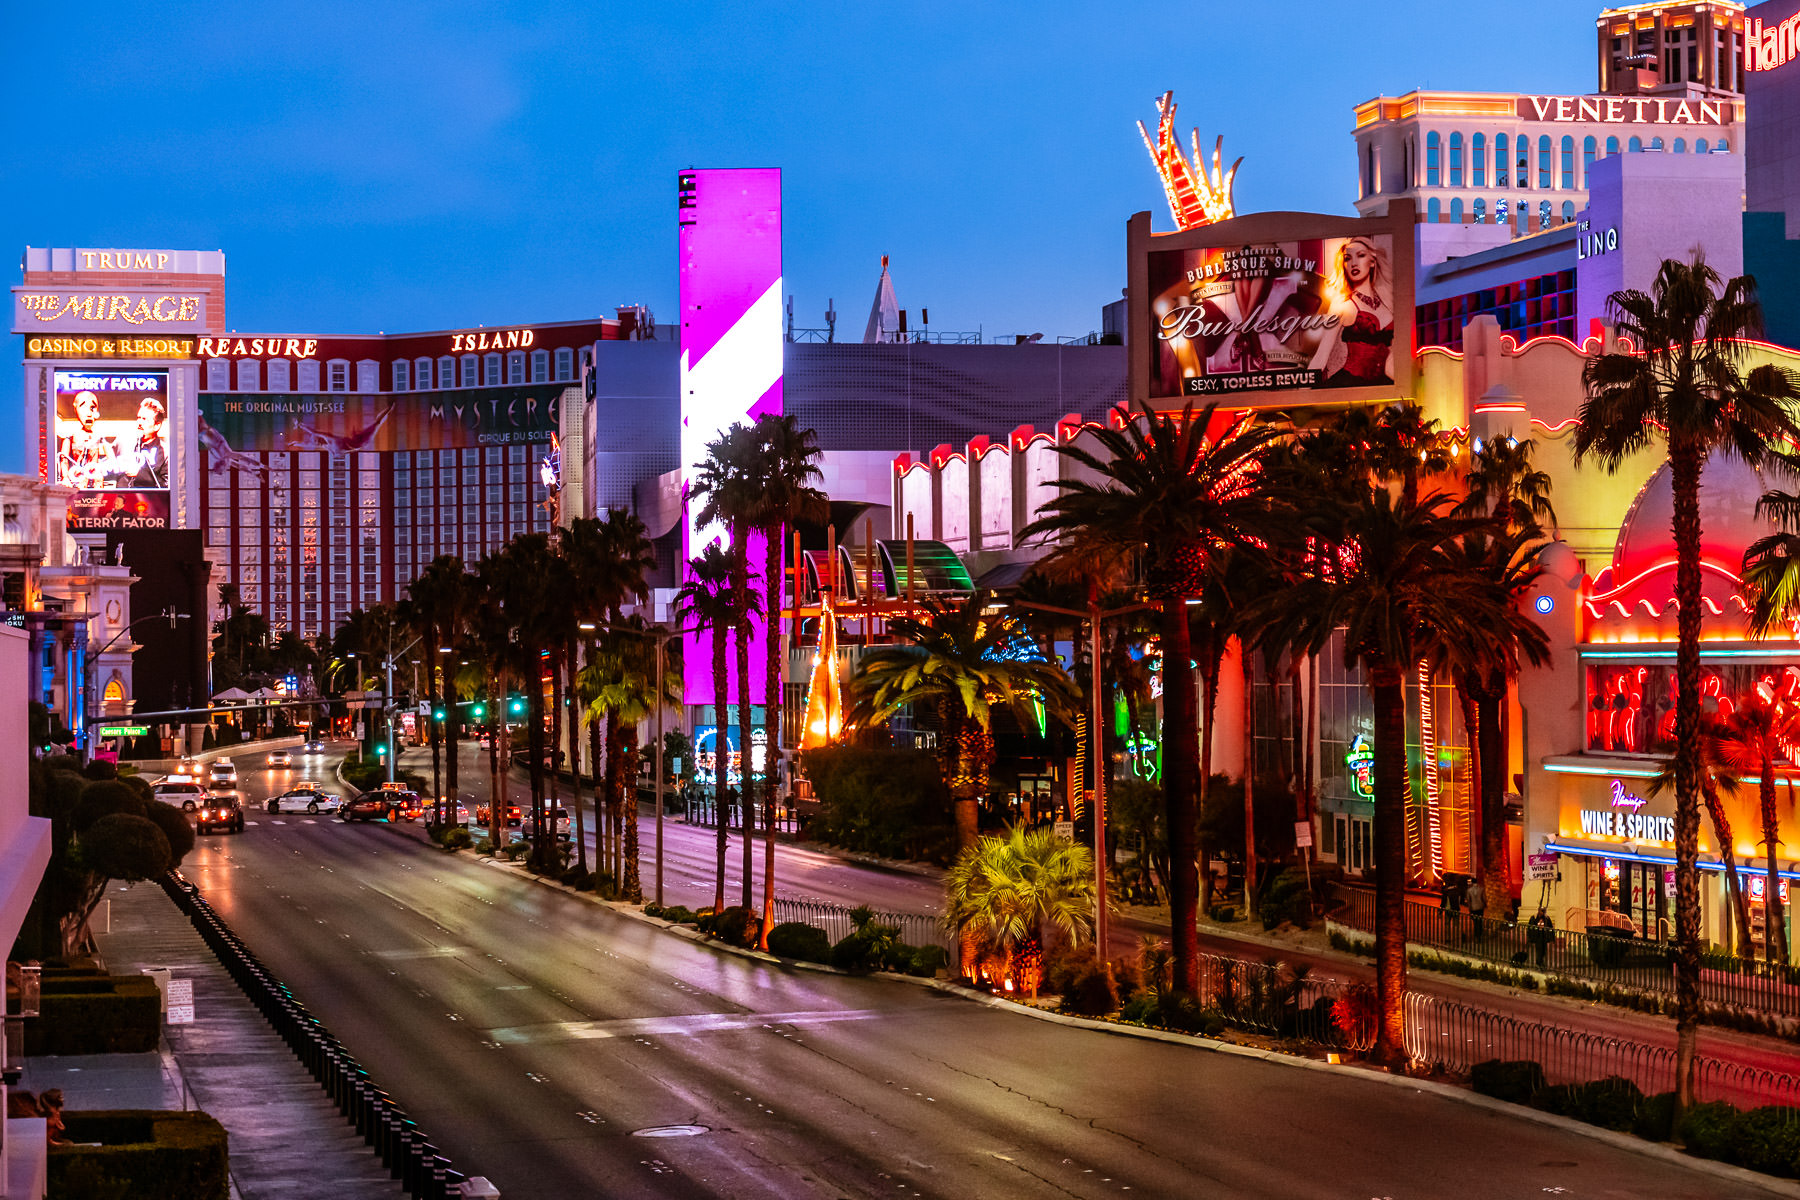 The first light of day on the Las Vegas Strip.